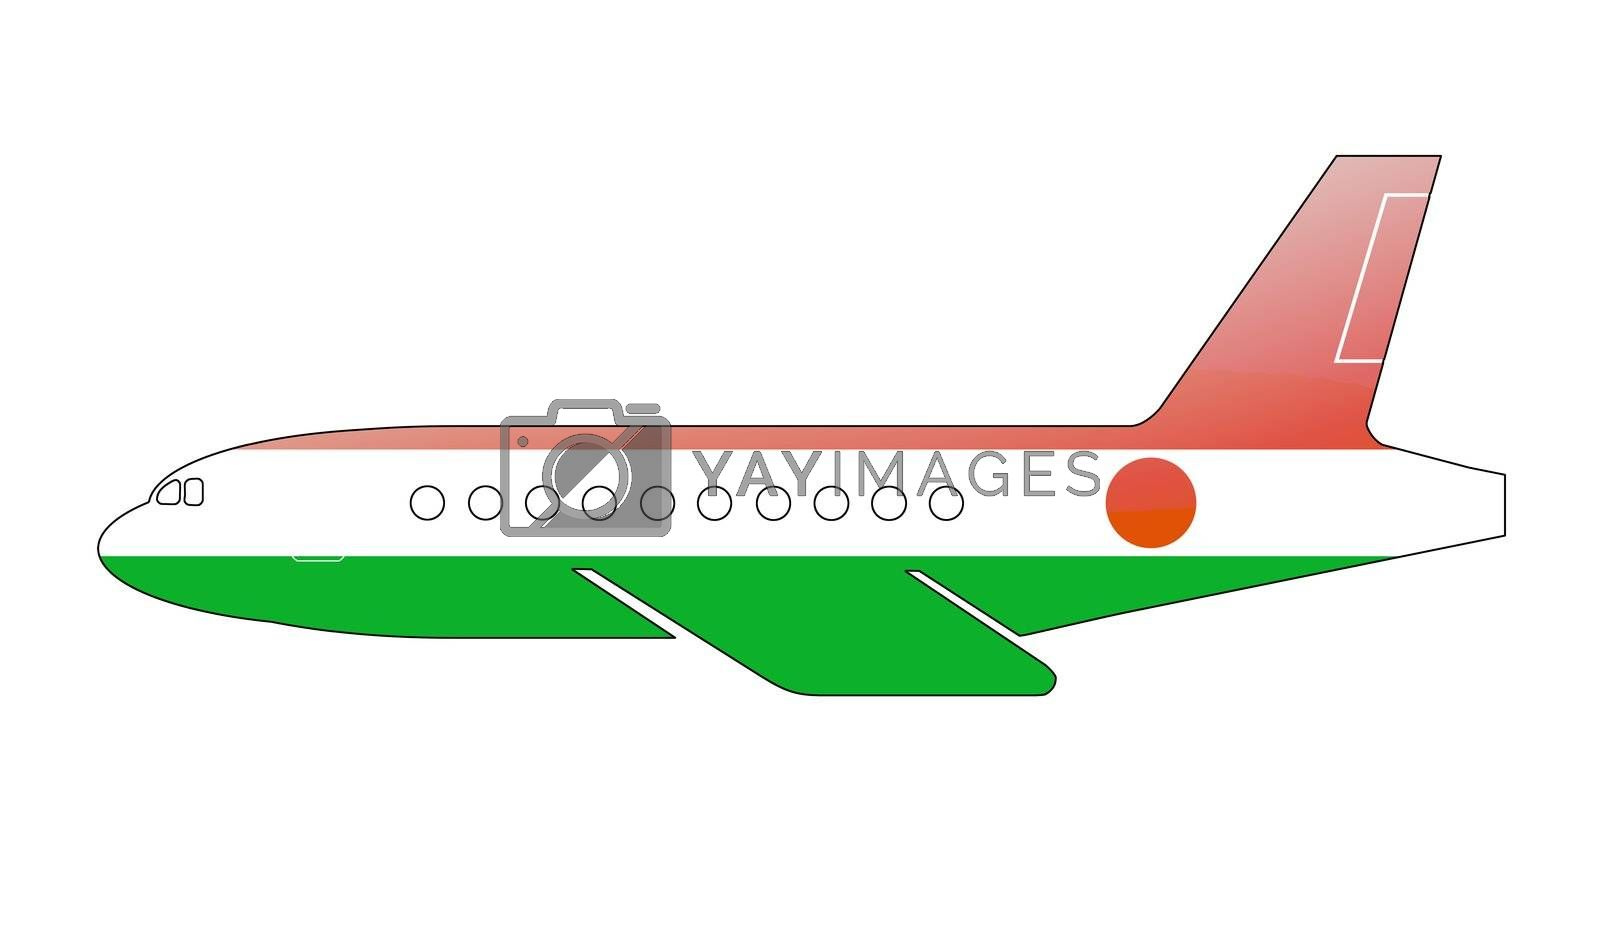 The Niger flag painted on the silhouette of a aircraft. glossy illustration